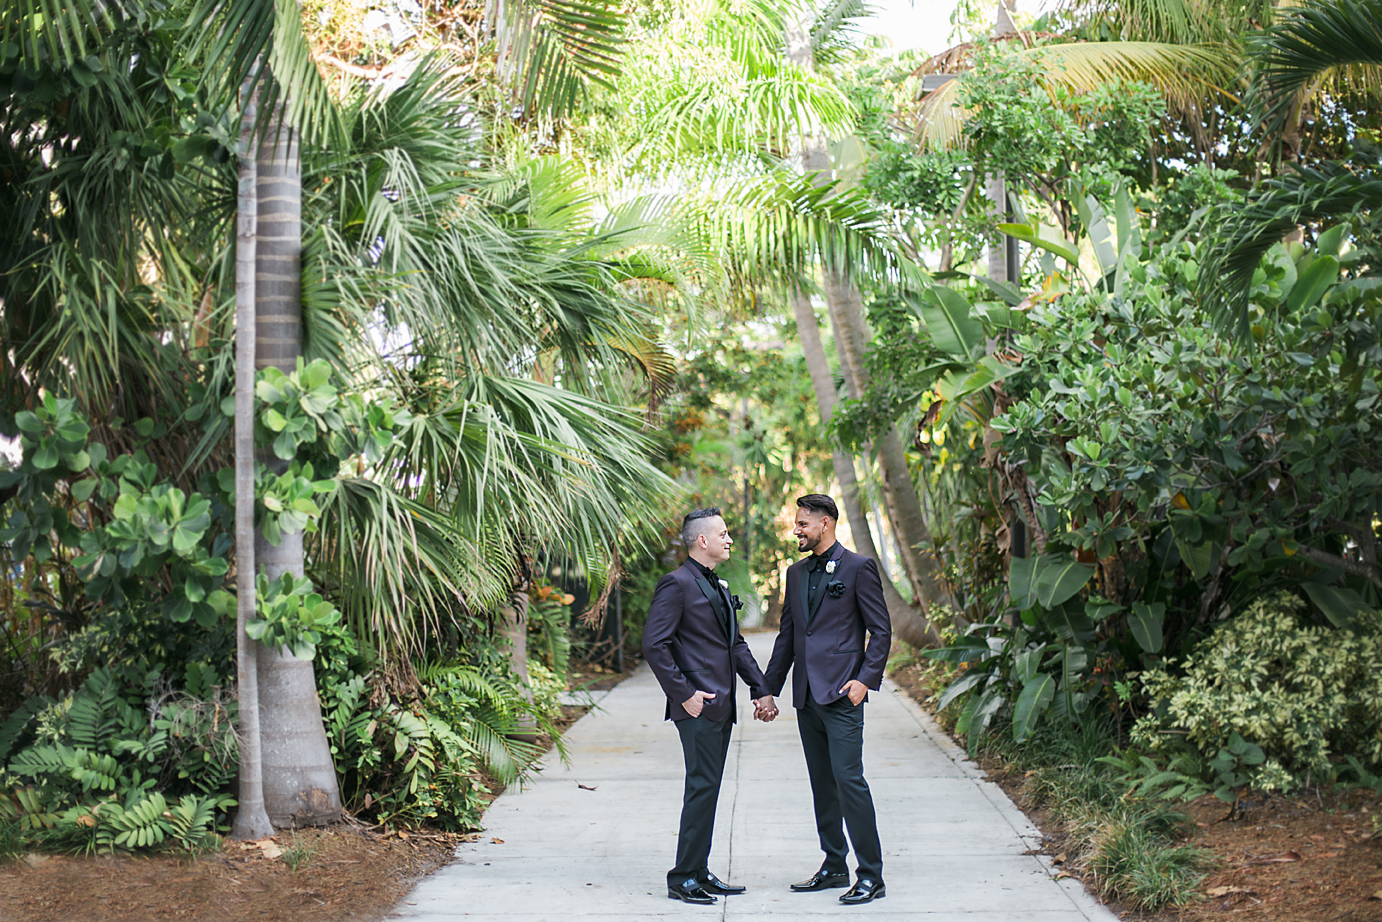 Javier and Michael, Miami Wedding Photographer, Destination Wedding Photographer, Emily & Co. Photography, Two Grooms, Couples Photos (5).jpg